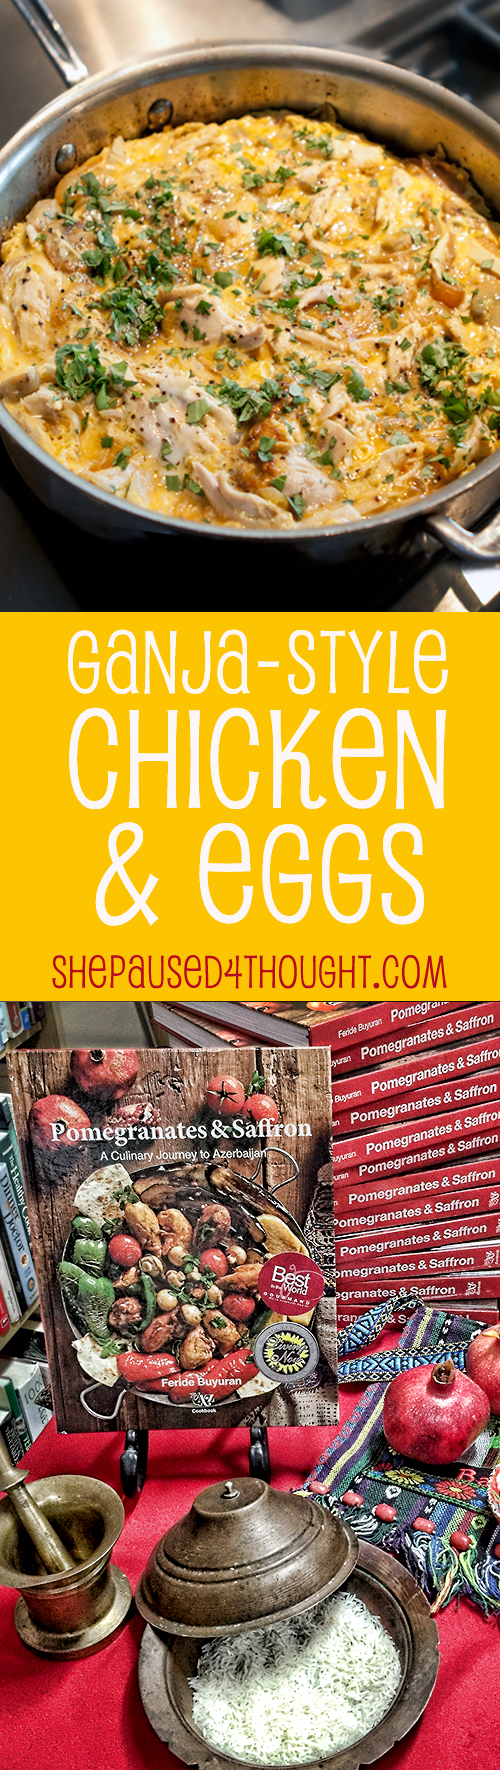 Ganja-style Chicken & Eggs | She Paused 4 Thought